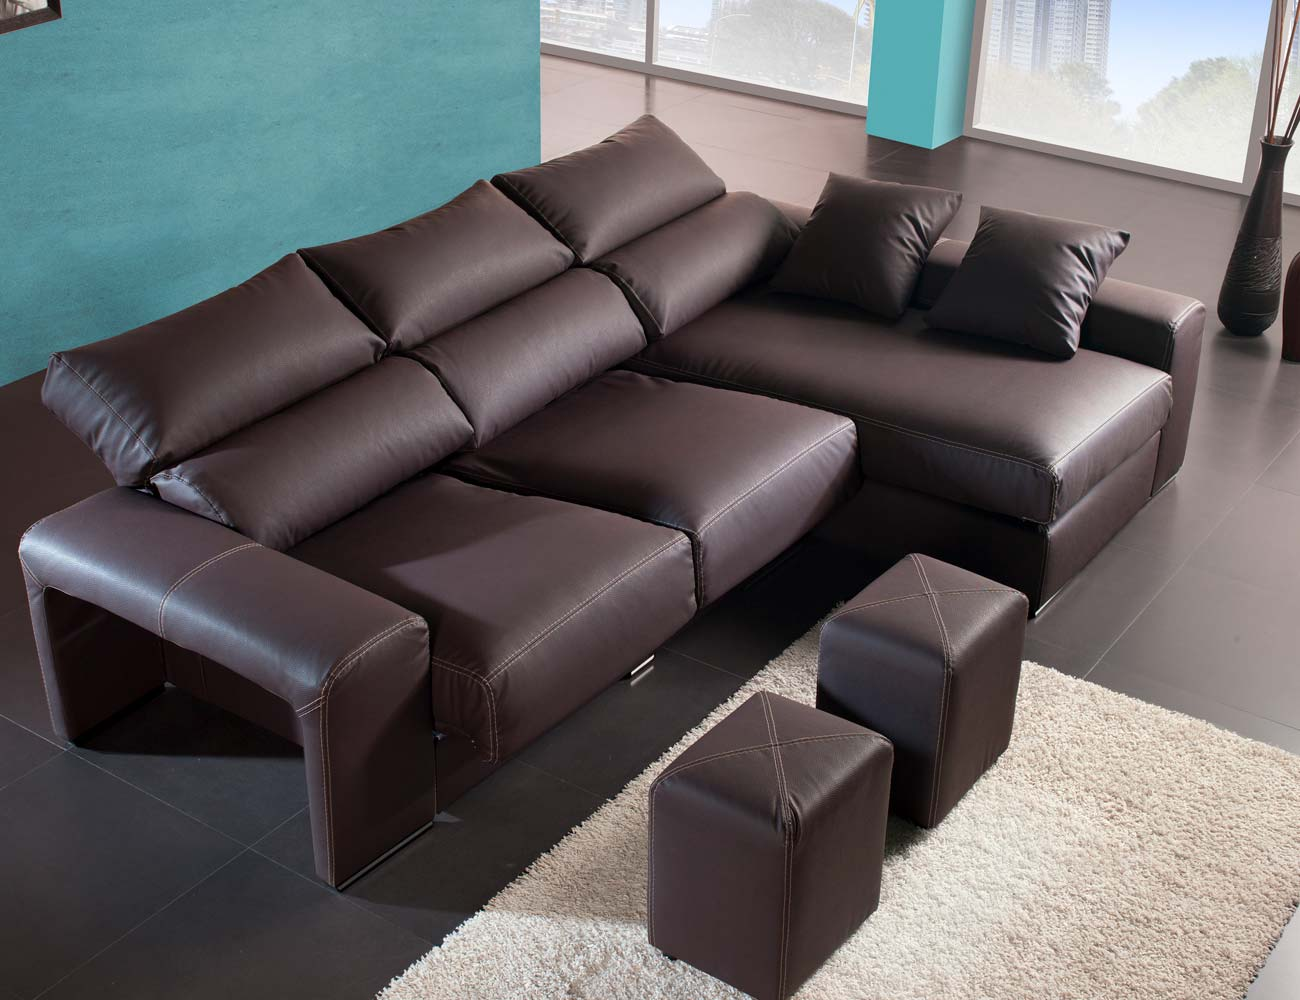 Sofa chaiselongue moderno polipiel chocolate poufs taburetes43